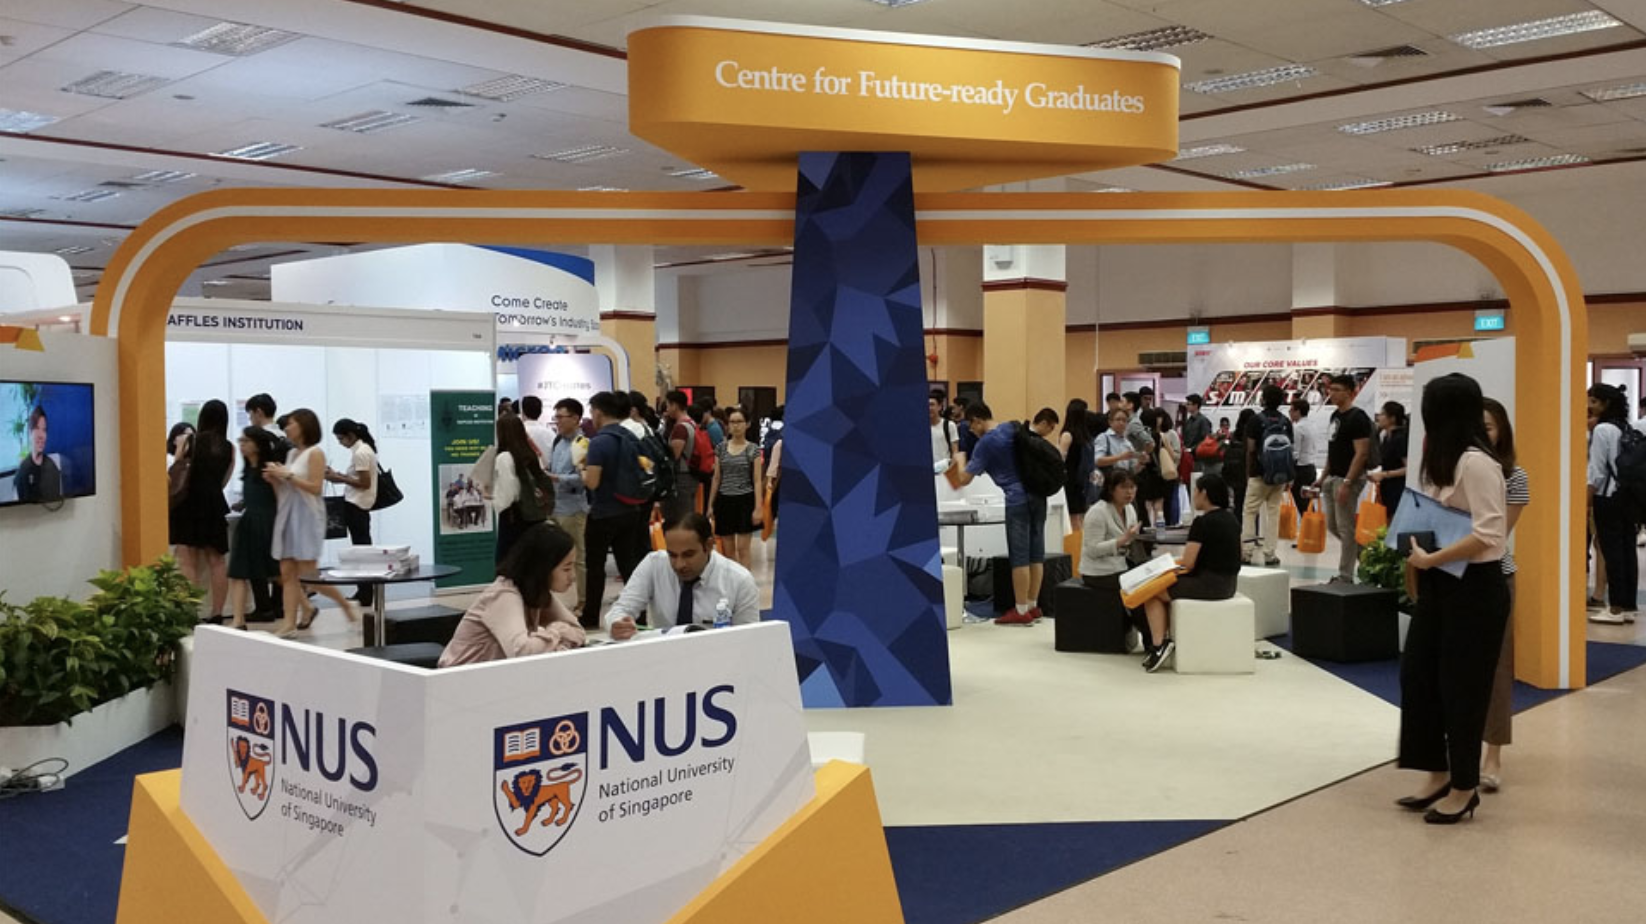 NUS graduates are now among the top 10 most employable in the world. The university regularly holds career fairs and events where NUS students and alumni could interact with potential employers and seek job opportunities. Photo courtesy: NUS